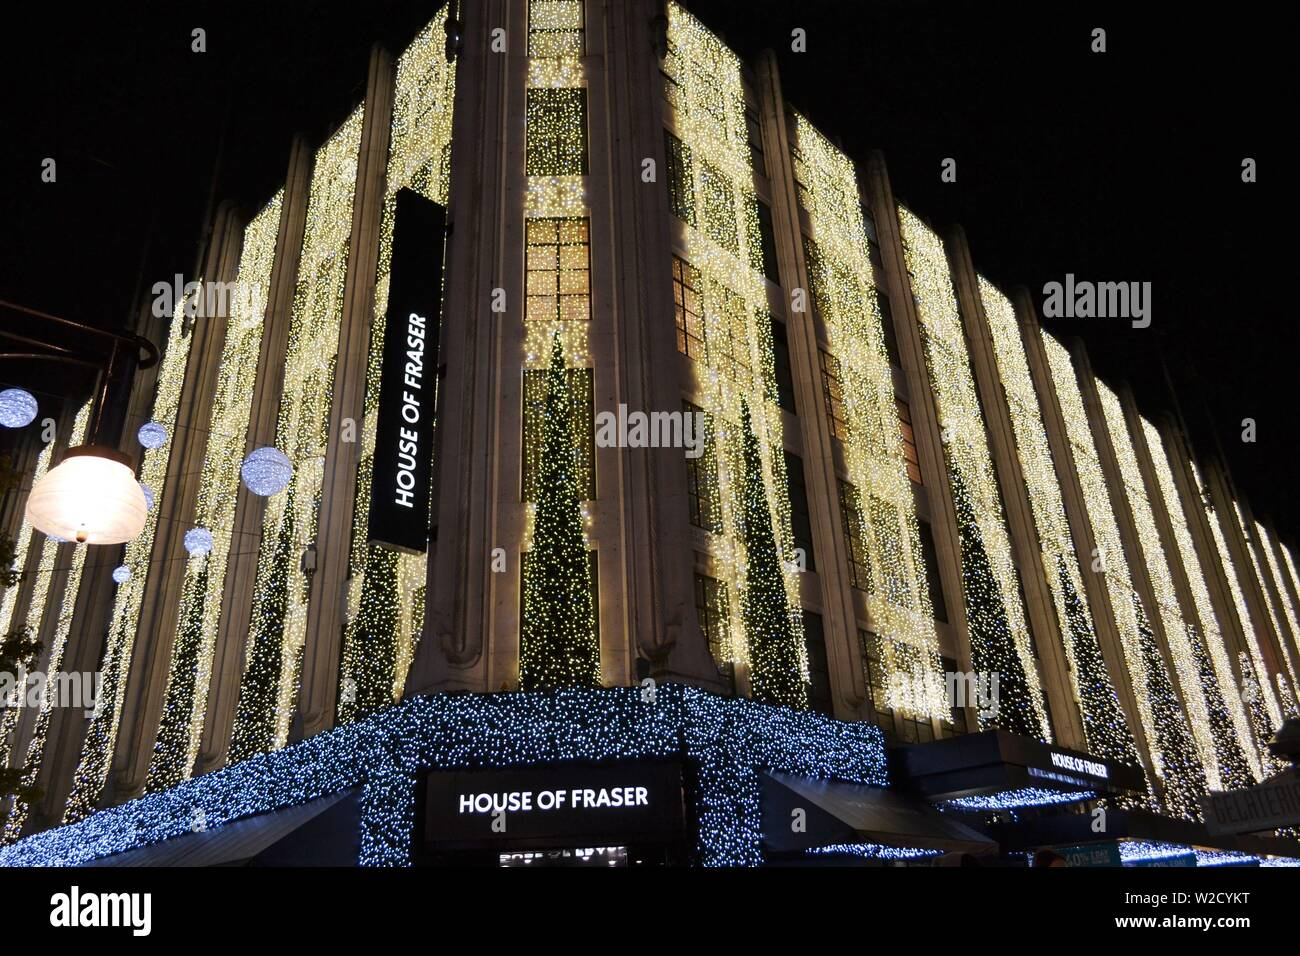 London/UK - November 28, 2013: Garlands of thousands of LED lights decorate the House of Fraser superstore during Christmas night hours. Stock Photo